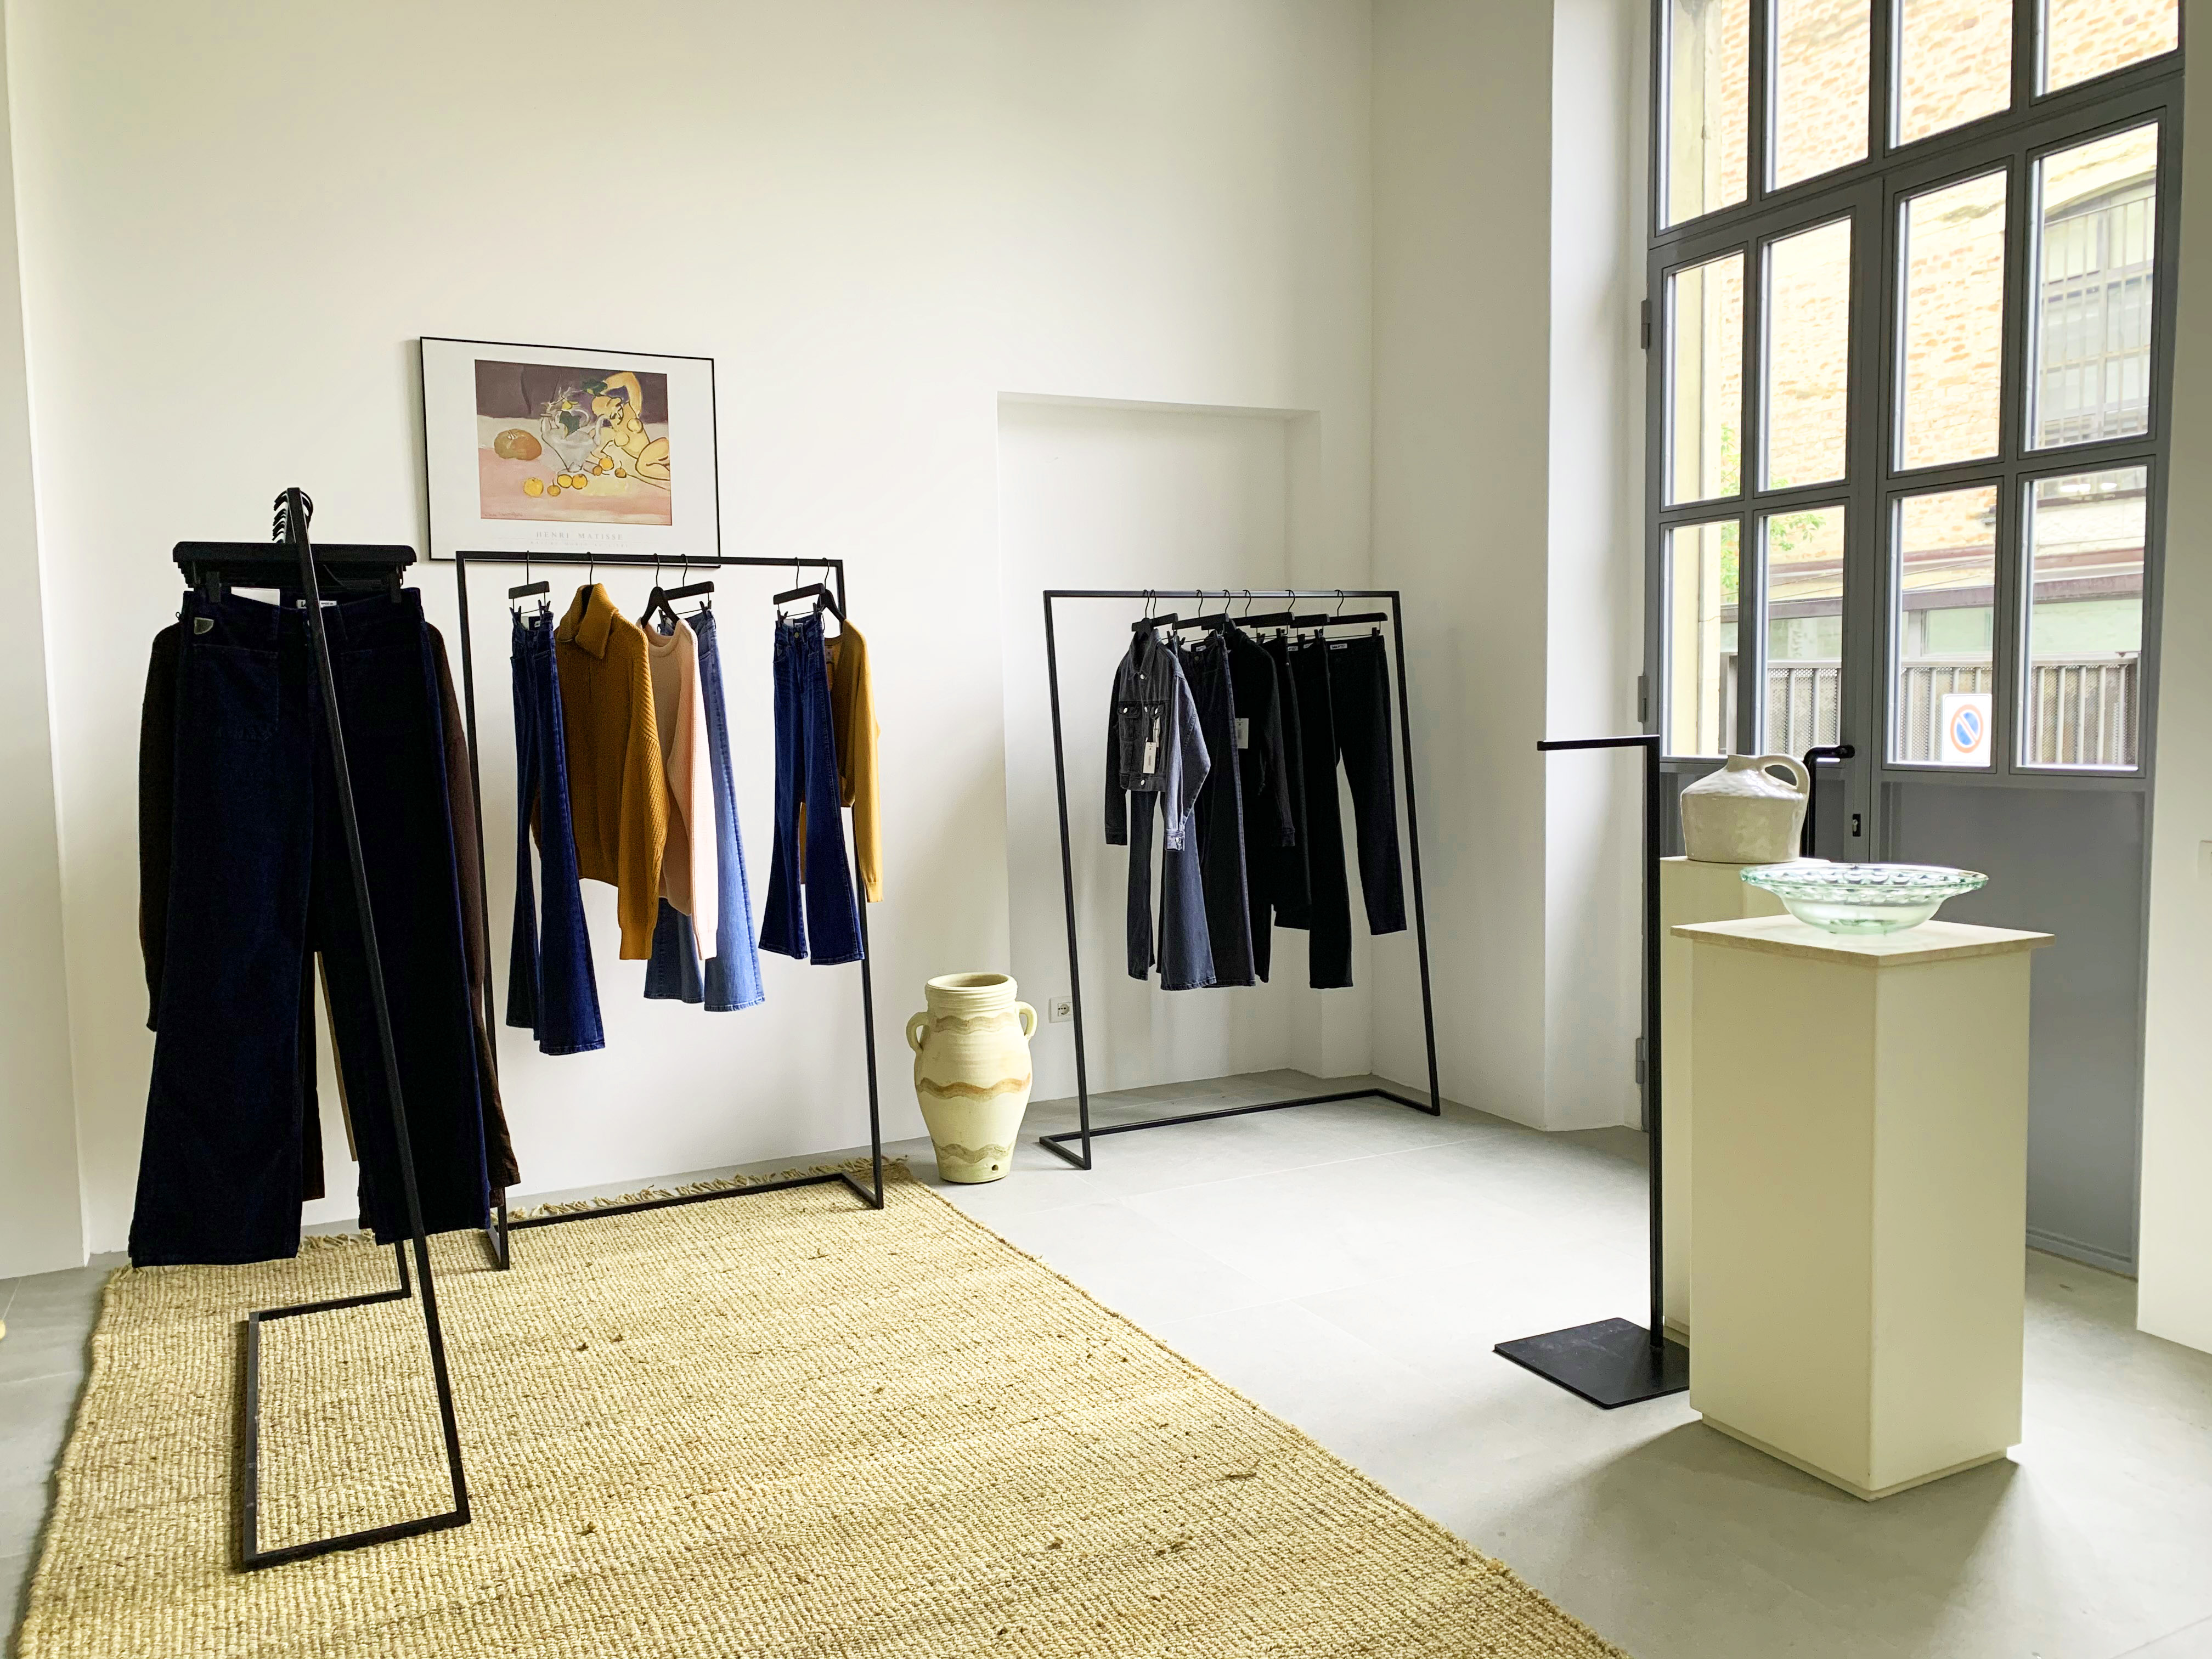 Lois Jeans - temporay showroom AI 21/22 in Via Tortona 31 - 1